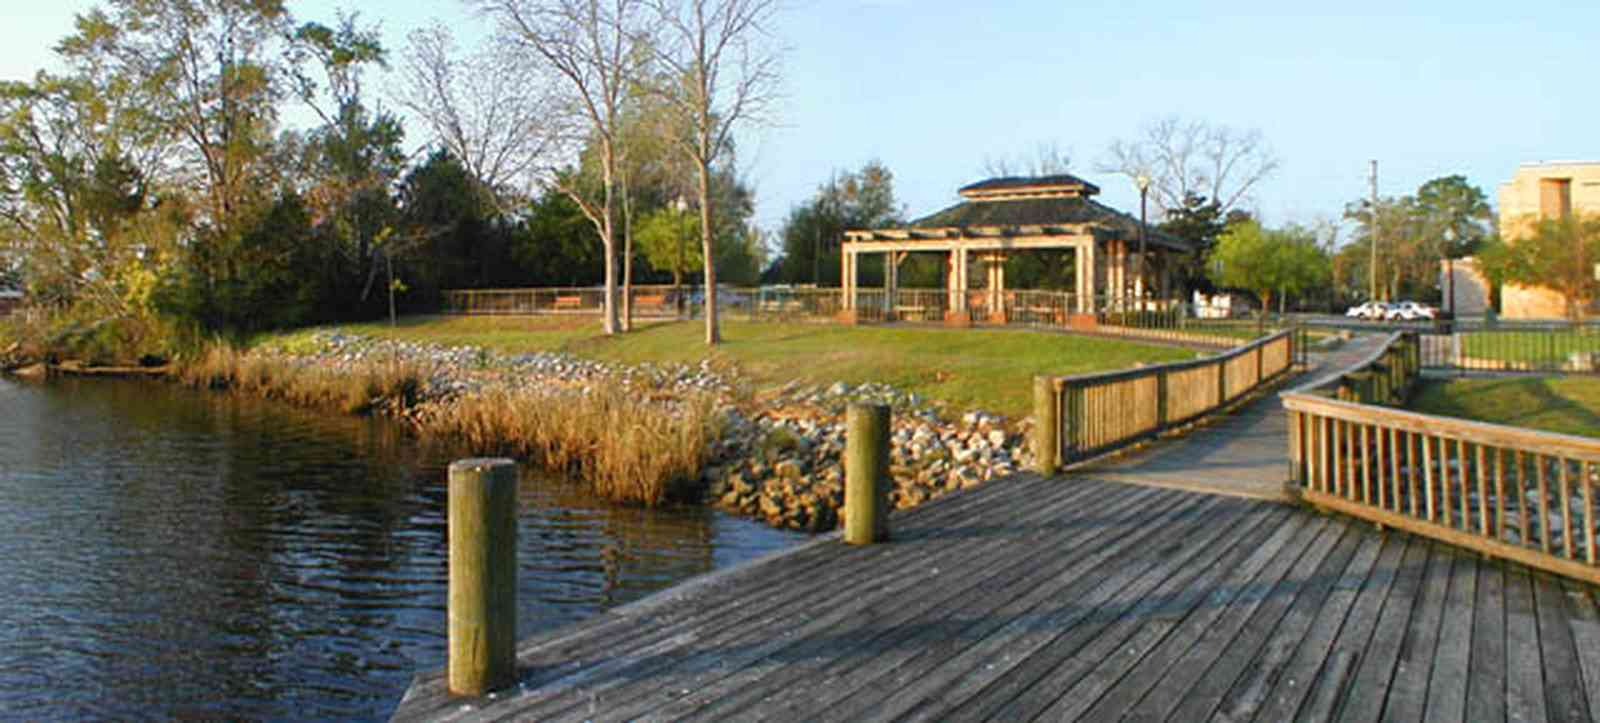 Milton:-Riverwalk_11.jpg:  blackwater river, boardwalk, park bench, wrought iron fence river birch, blackwater bridge, gazebo, boating, water sports, river channel,